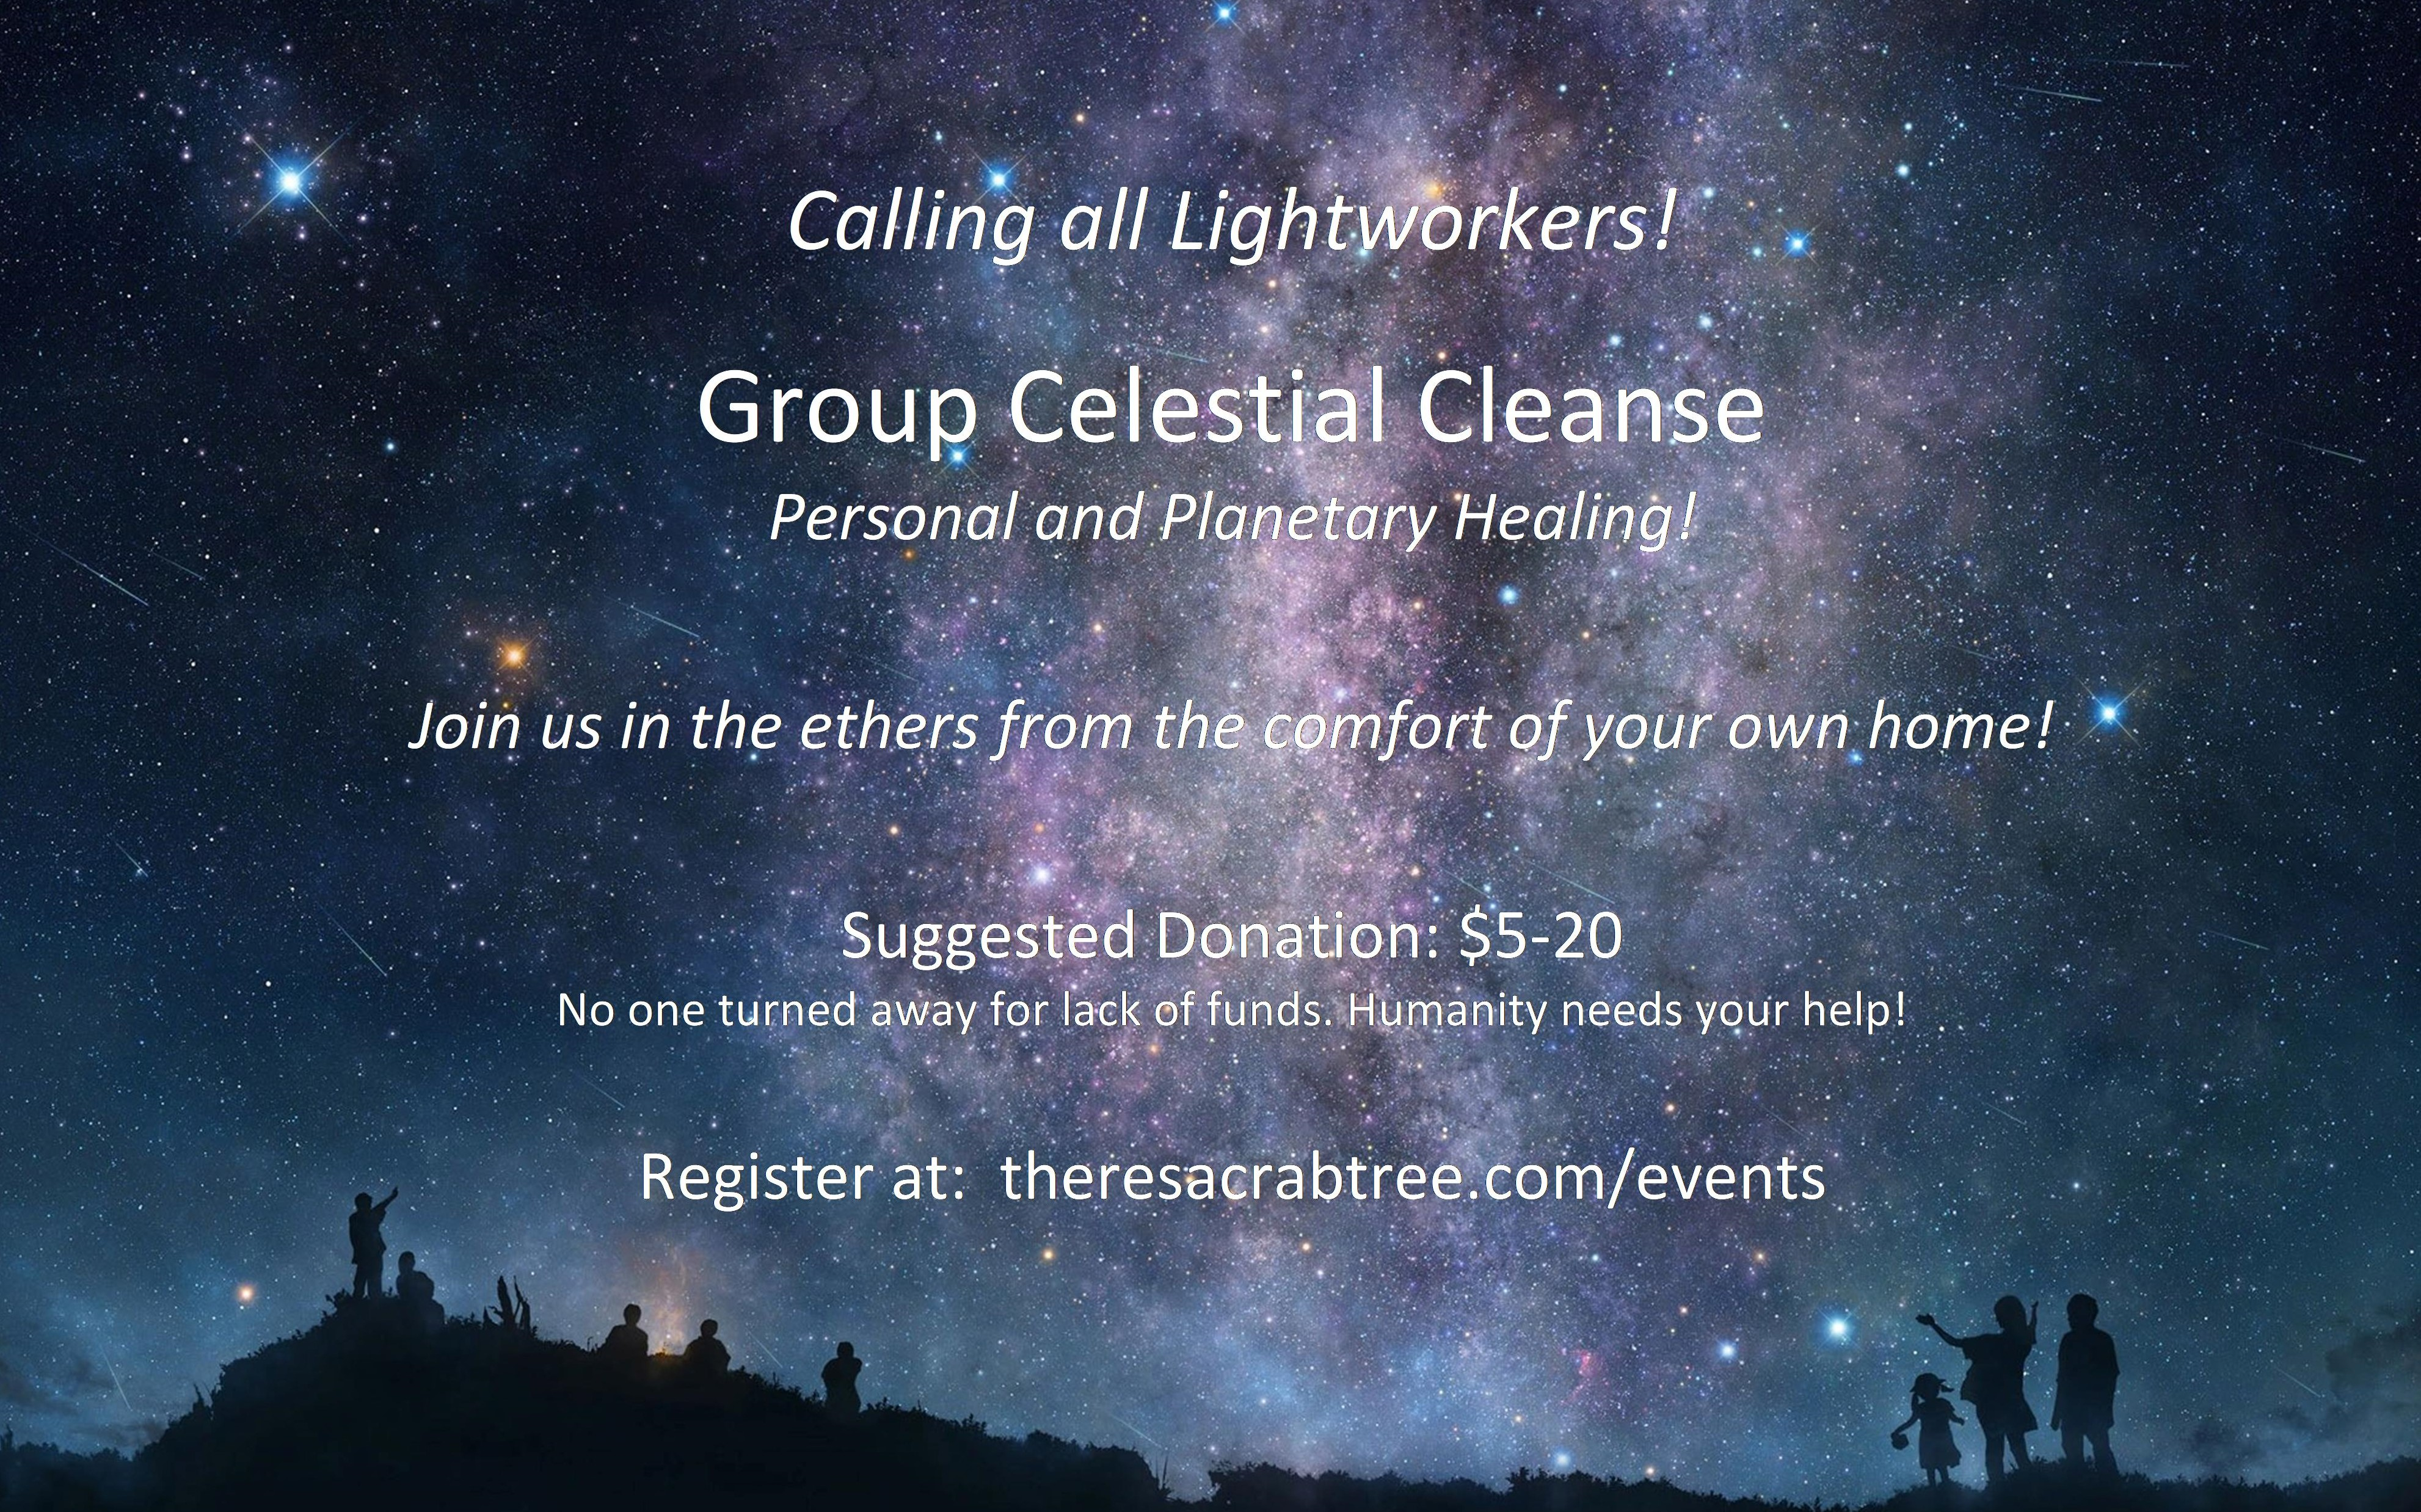 Newsletter: Global Cleanse, New Video!